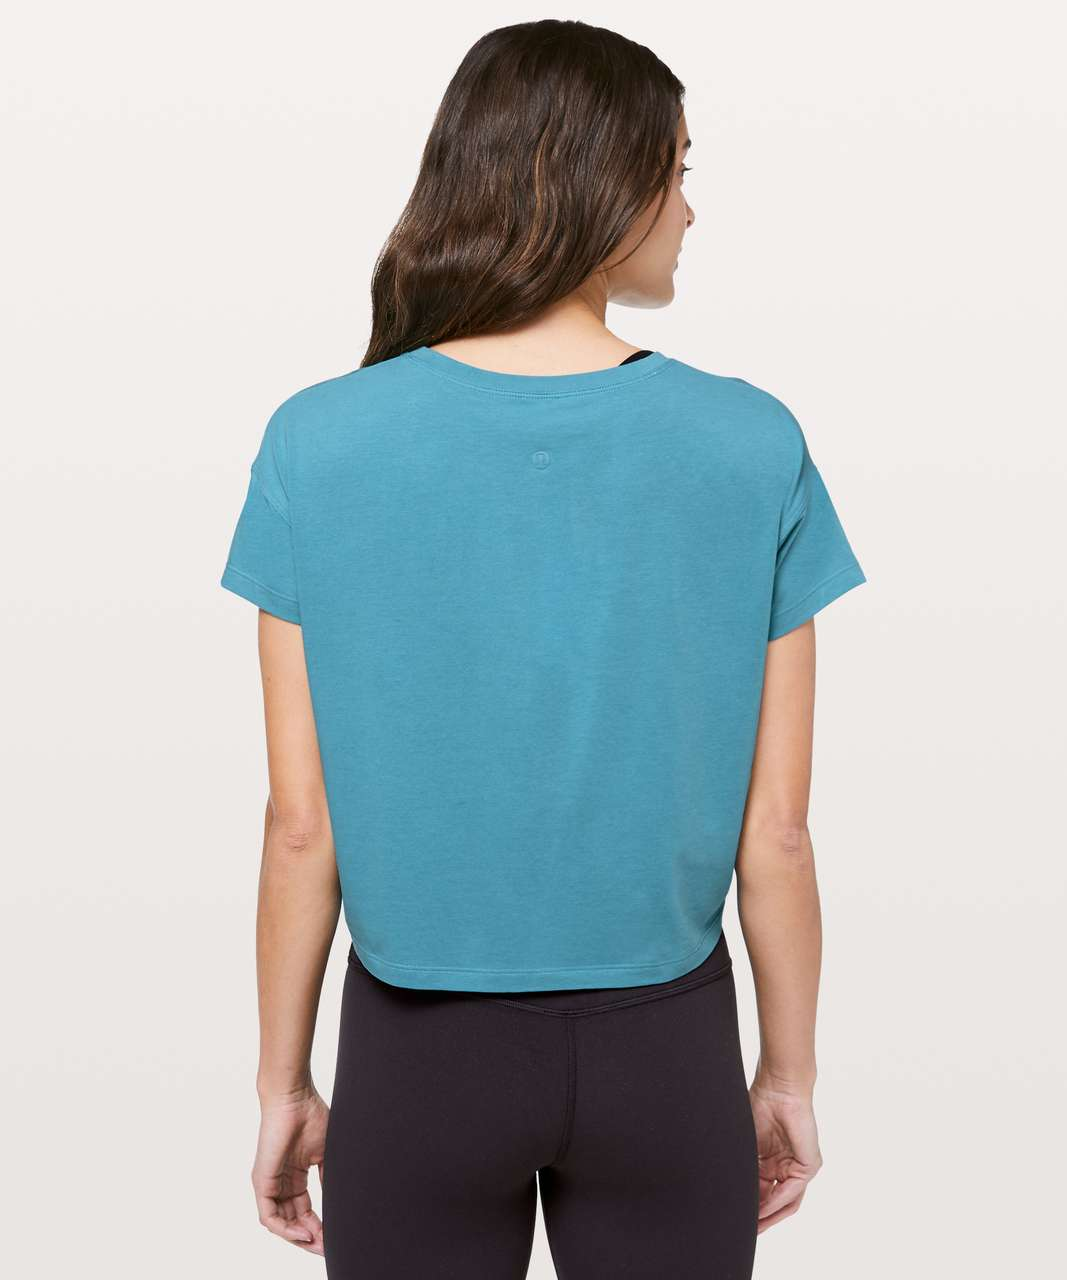 Lululemon Cates Tee - Marlin